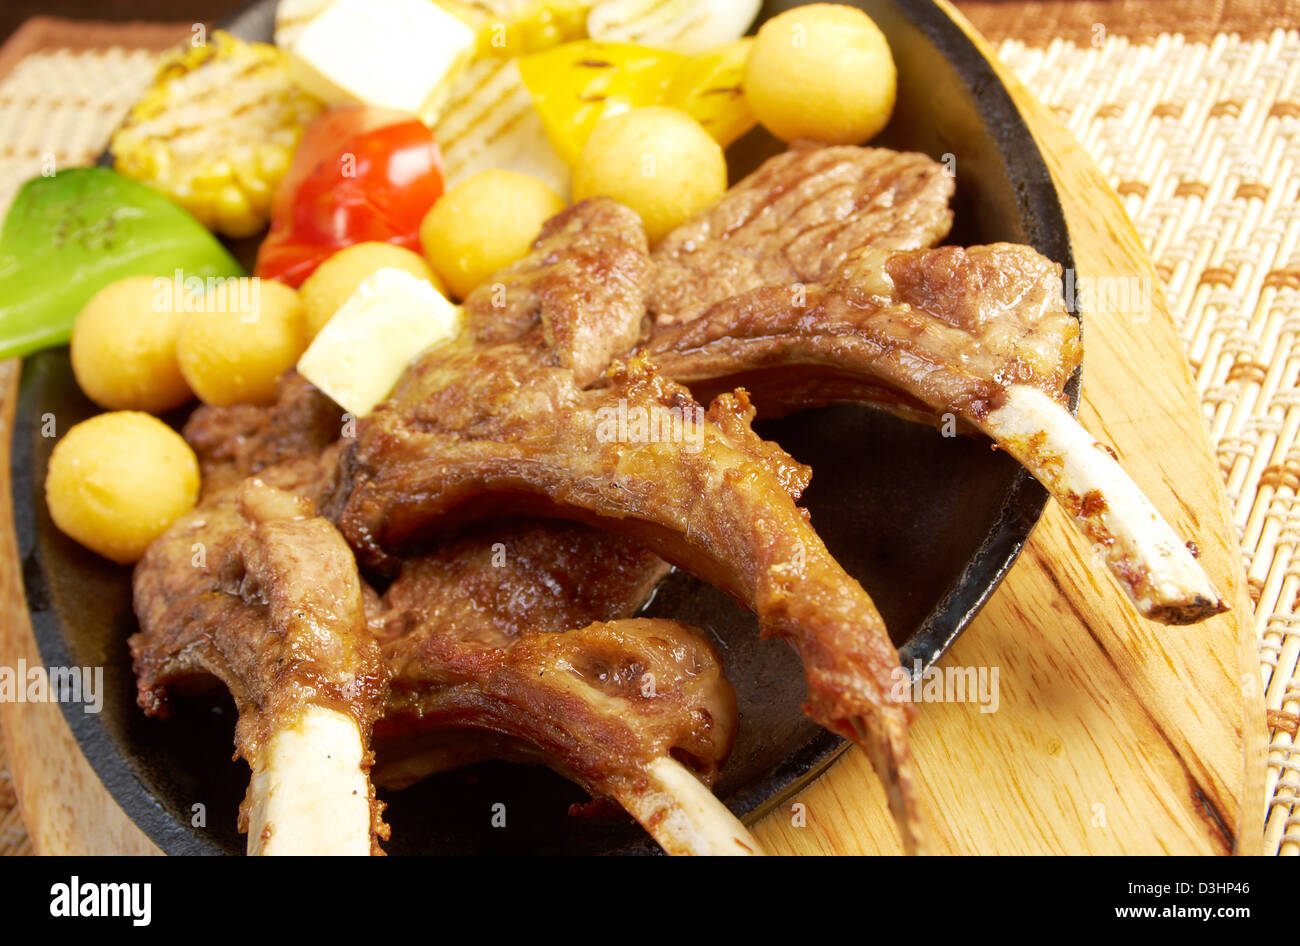 Japanese cuisine .Japanese spare ribs on a plate .meat lamb on rib  - Stock Image